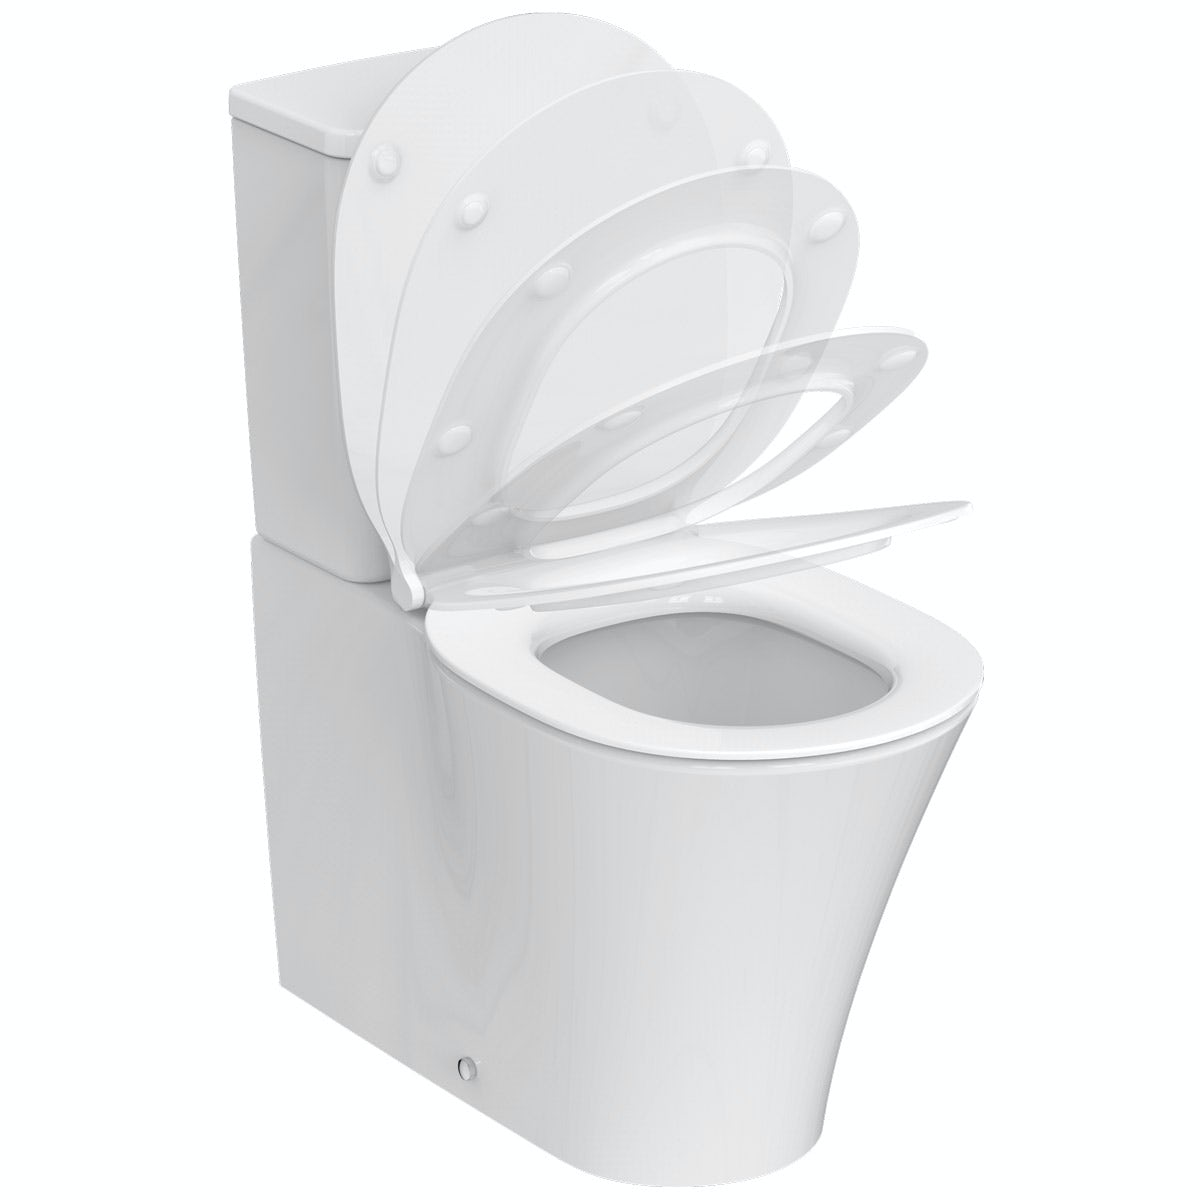 Ideal Standard Concept Air close coupled toilet with soft close toilet seat